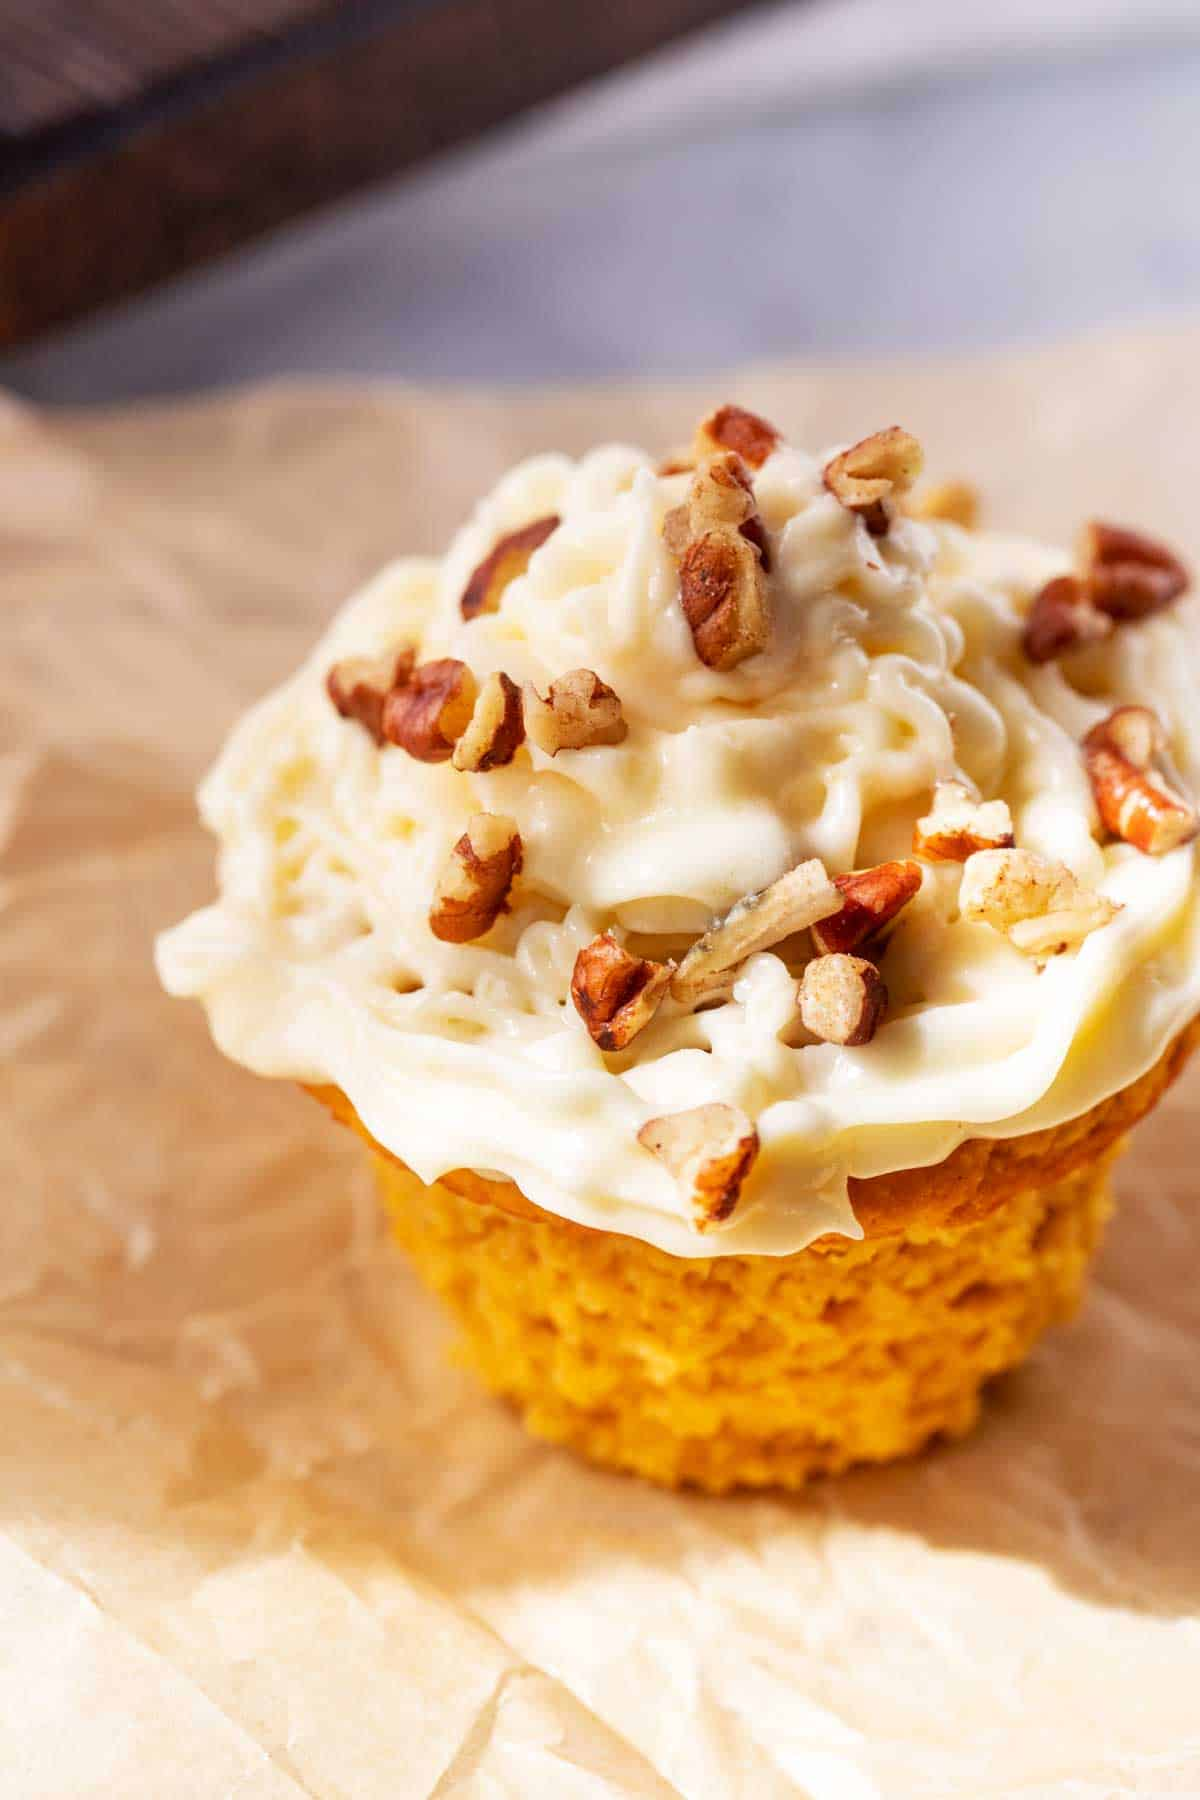 Close up photo of a Keto Pumpkin Muffin iced with cream cheese frosting and sprinkled with pecans.